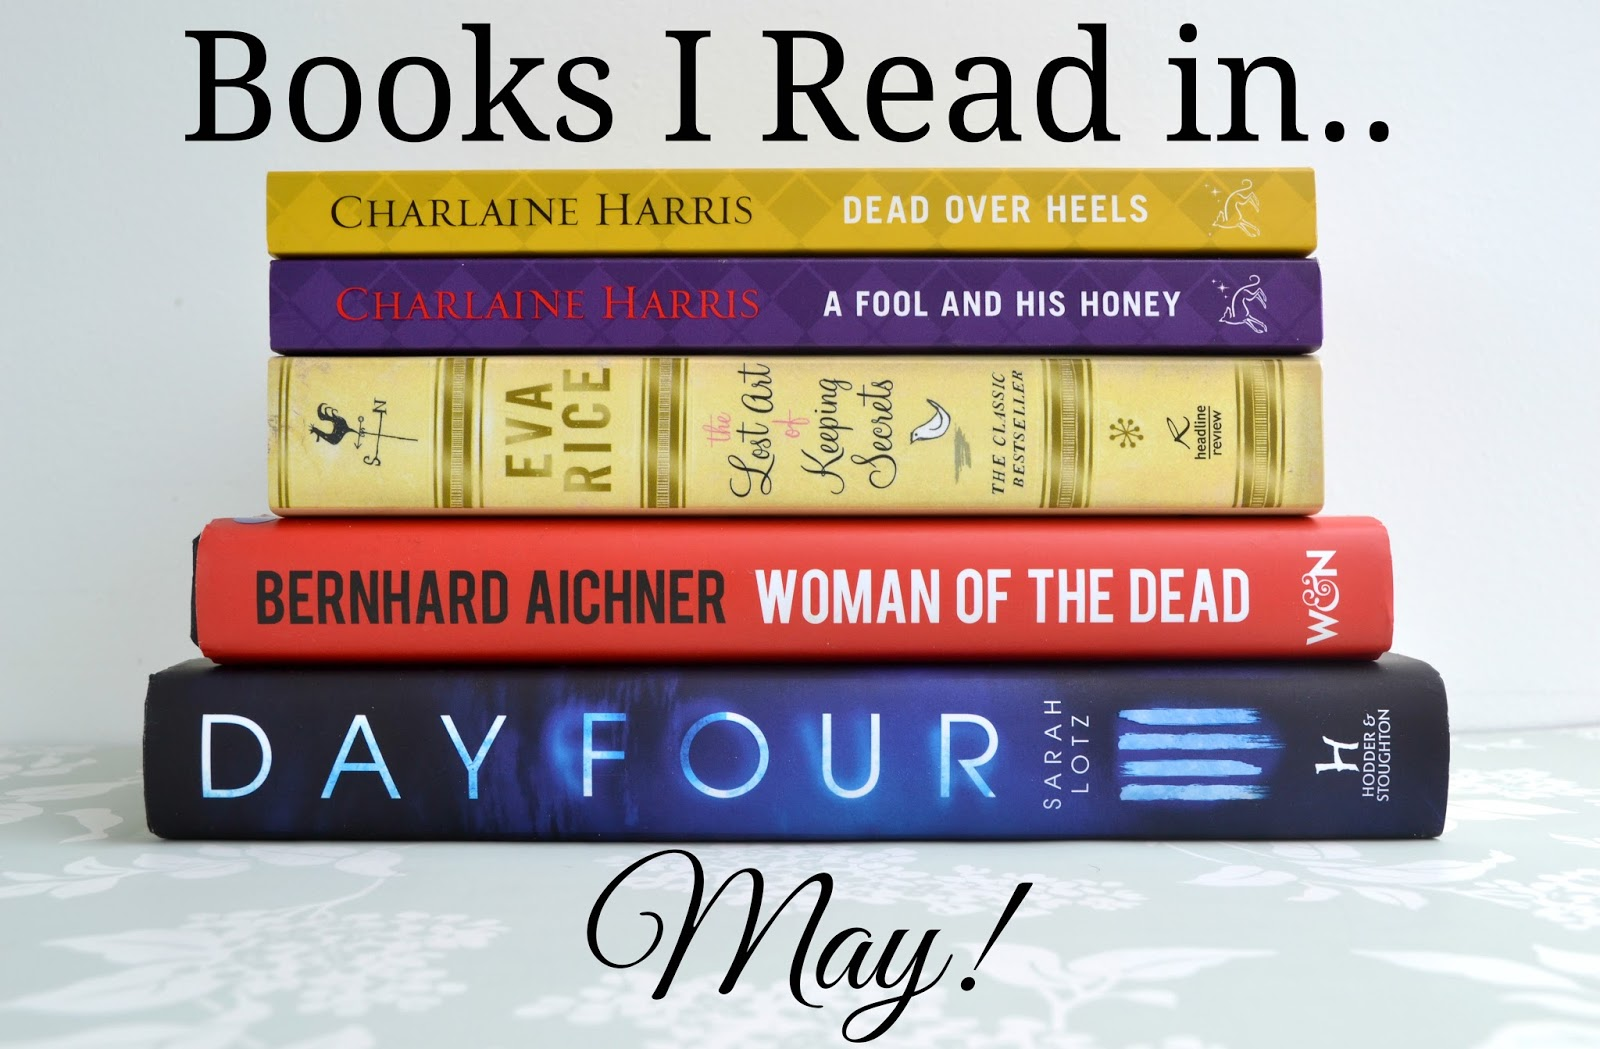 Pile of books including Dead over Heels and A Fool and his Honey by Charlaine Harris, The Lost Art of keeping Secrets by Eva Rice, Woman of the Dead by Bernhard Aichner and Day Four by Sarah Lotz